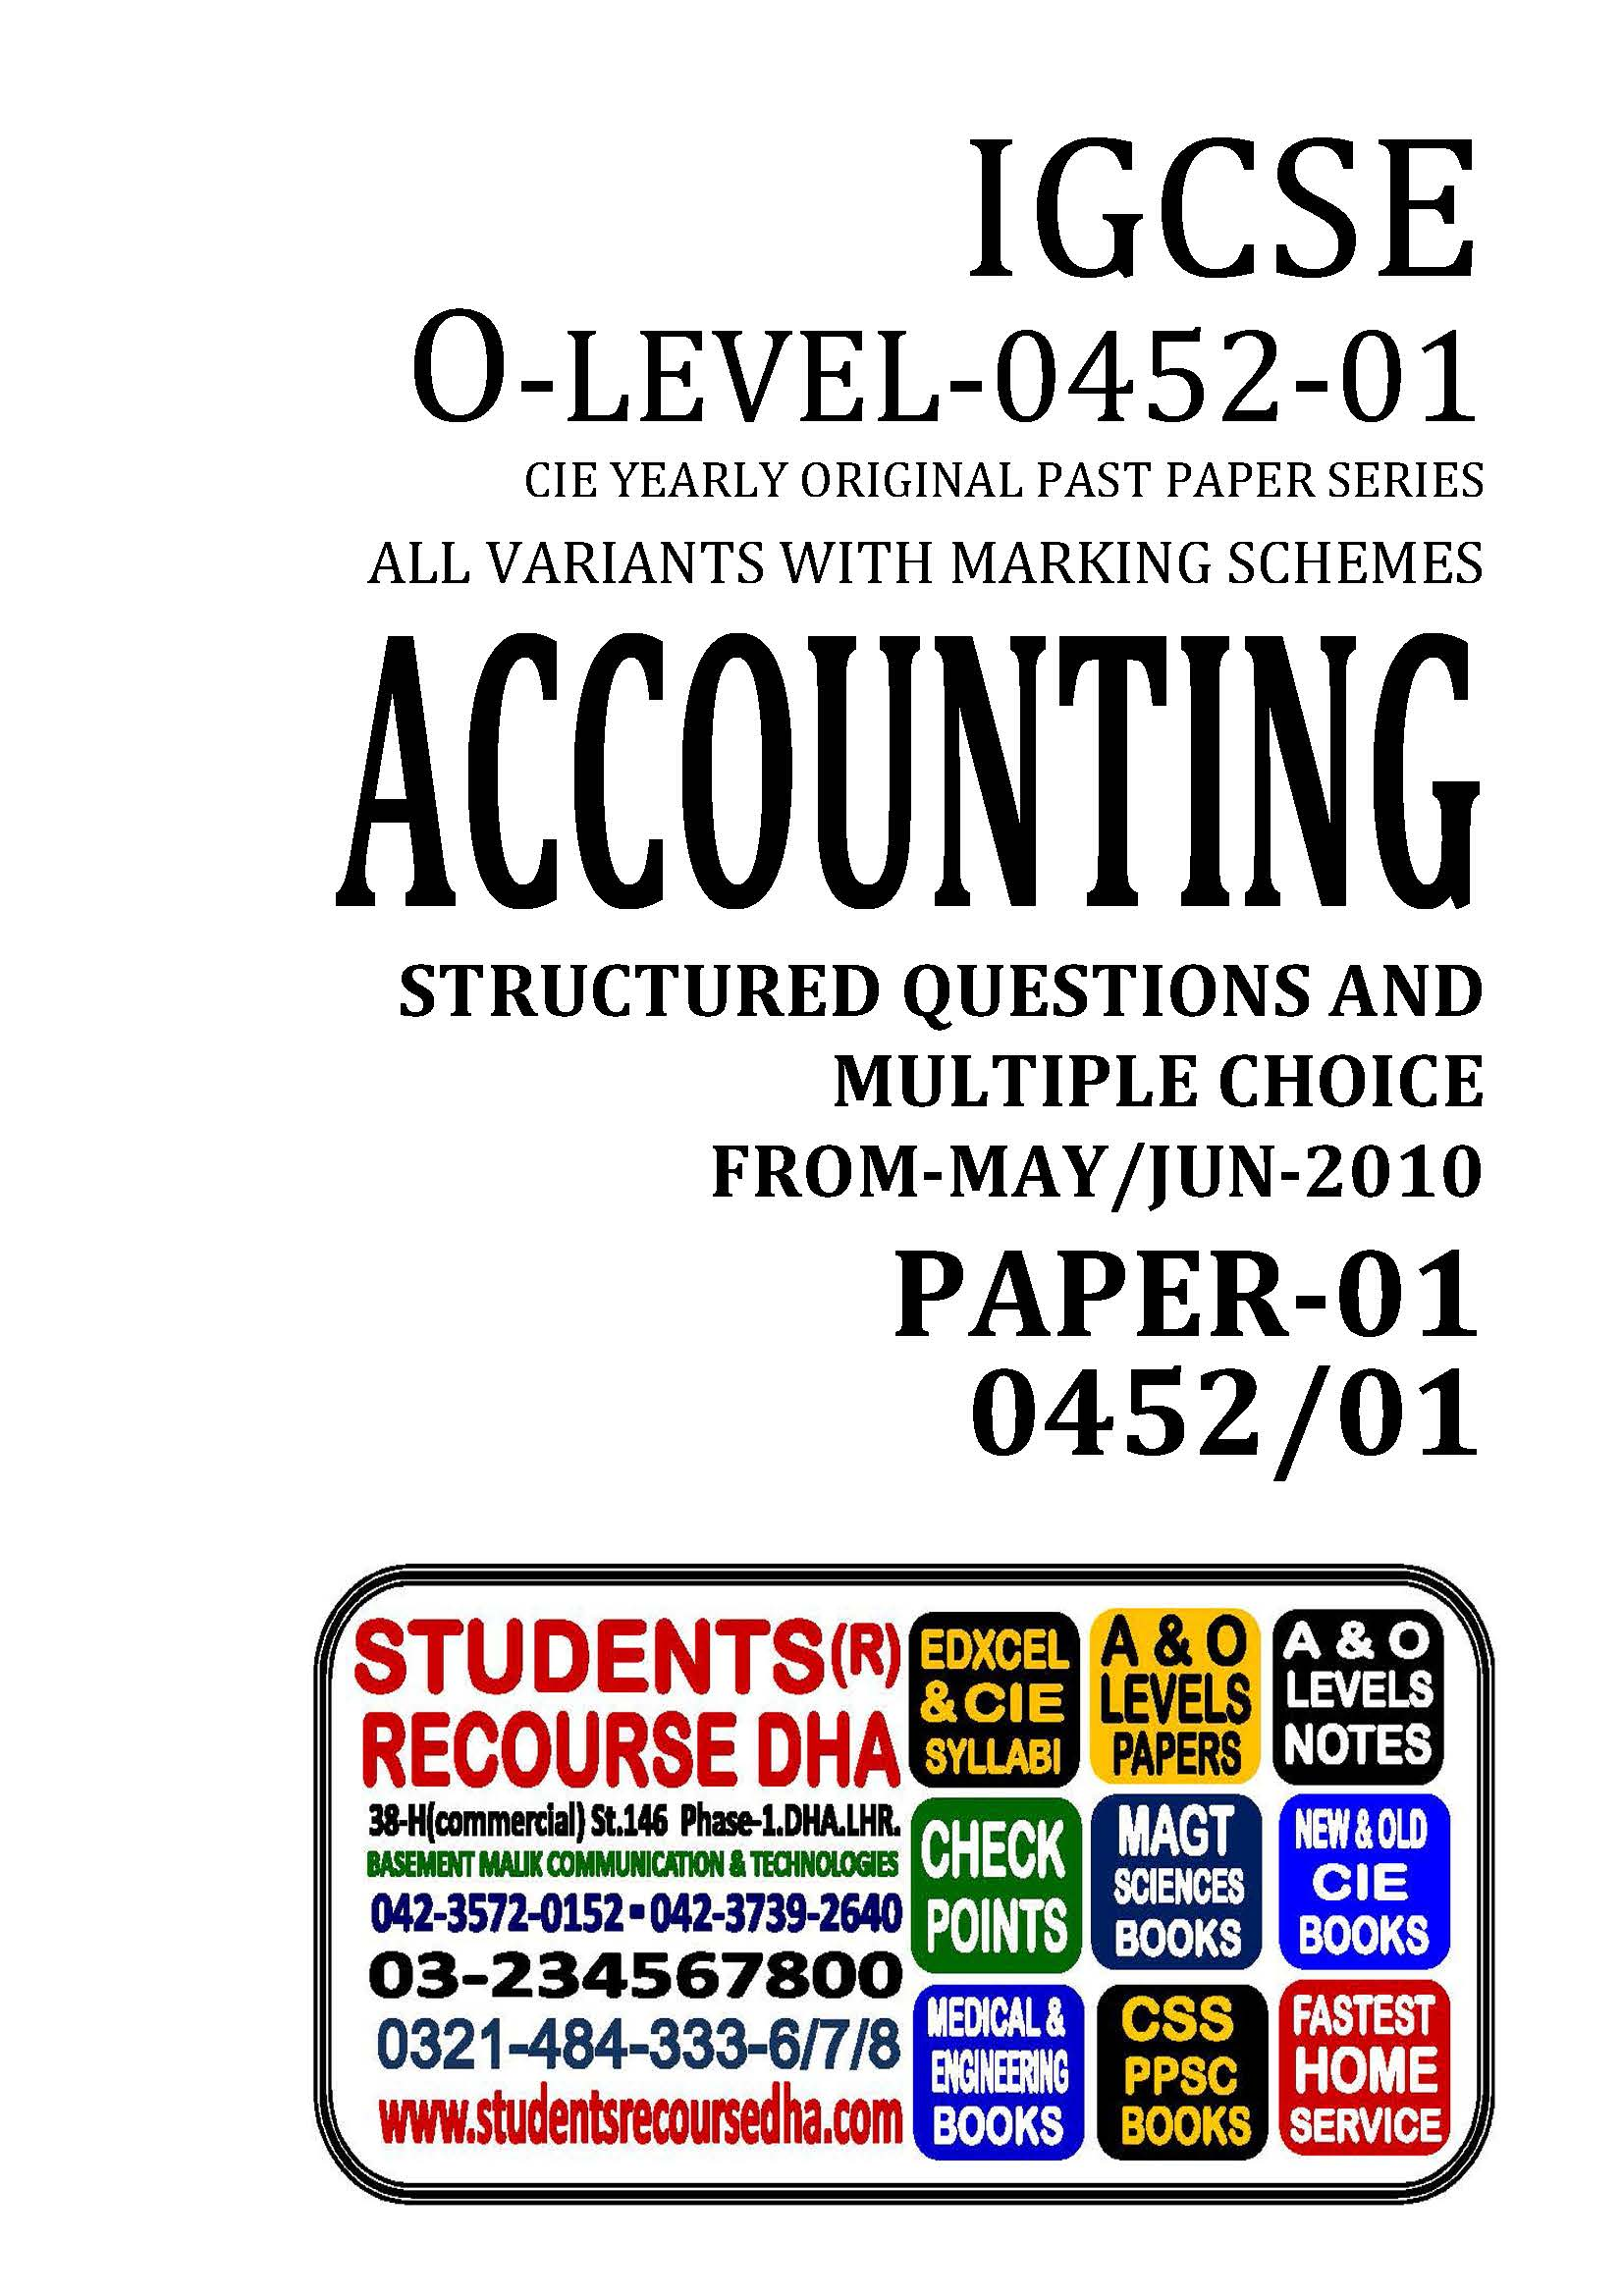 UNSOLVED YEARLY WITH MARKING SCHEME IGCSE ACCOUNTING-P1-0452-01